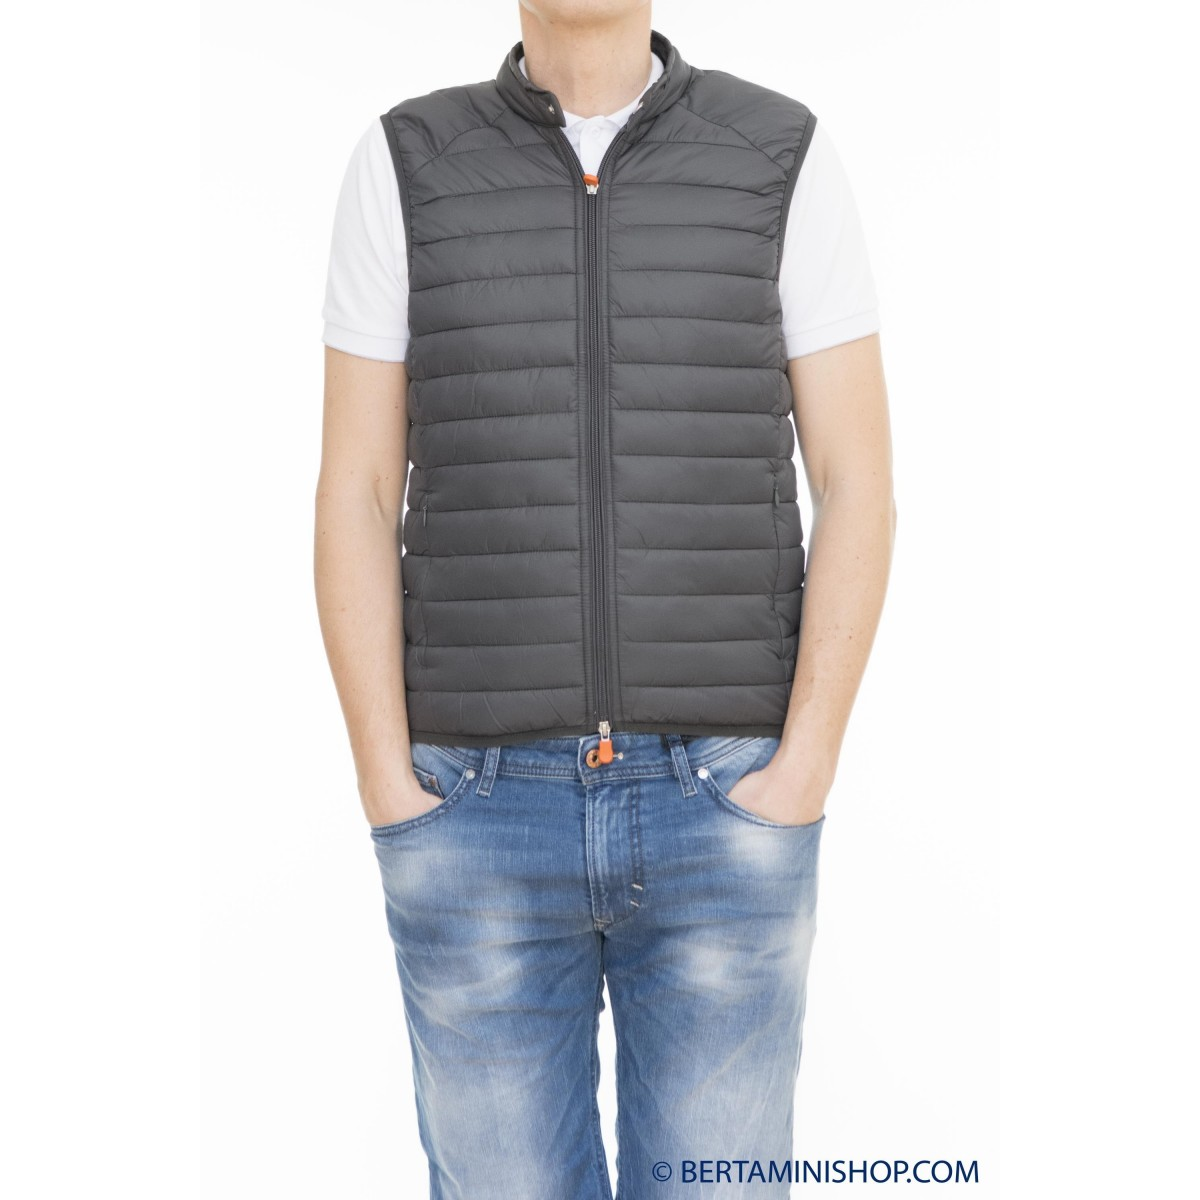 Weste Save The Duck Manner - D8072M Giga 2 Gilet 0149 - Iron grey